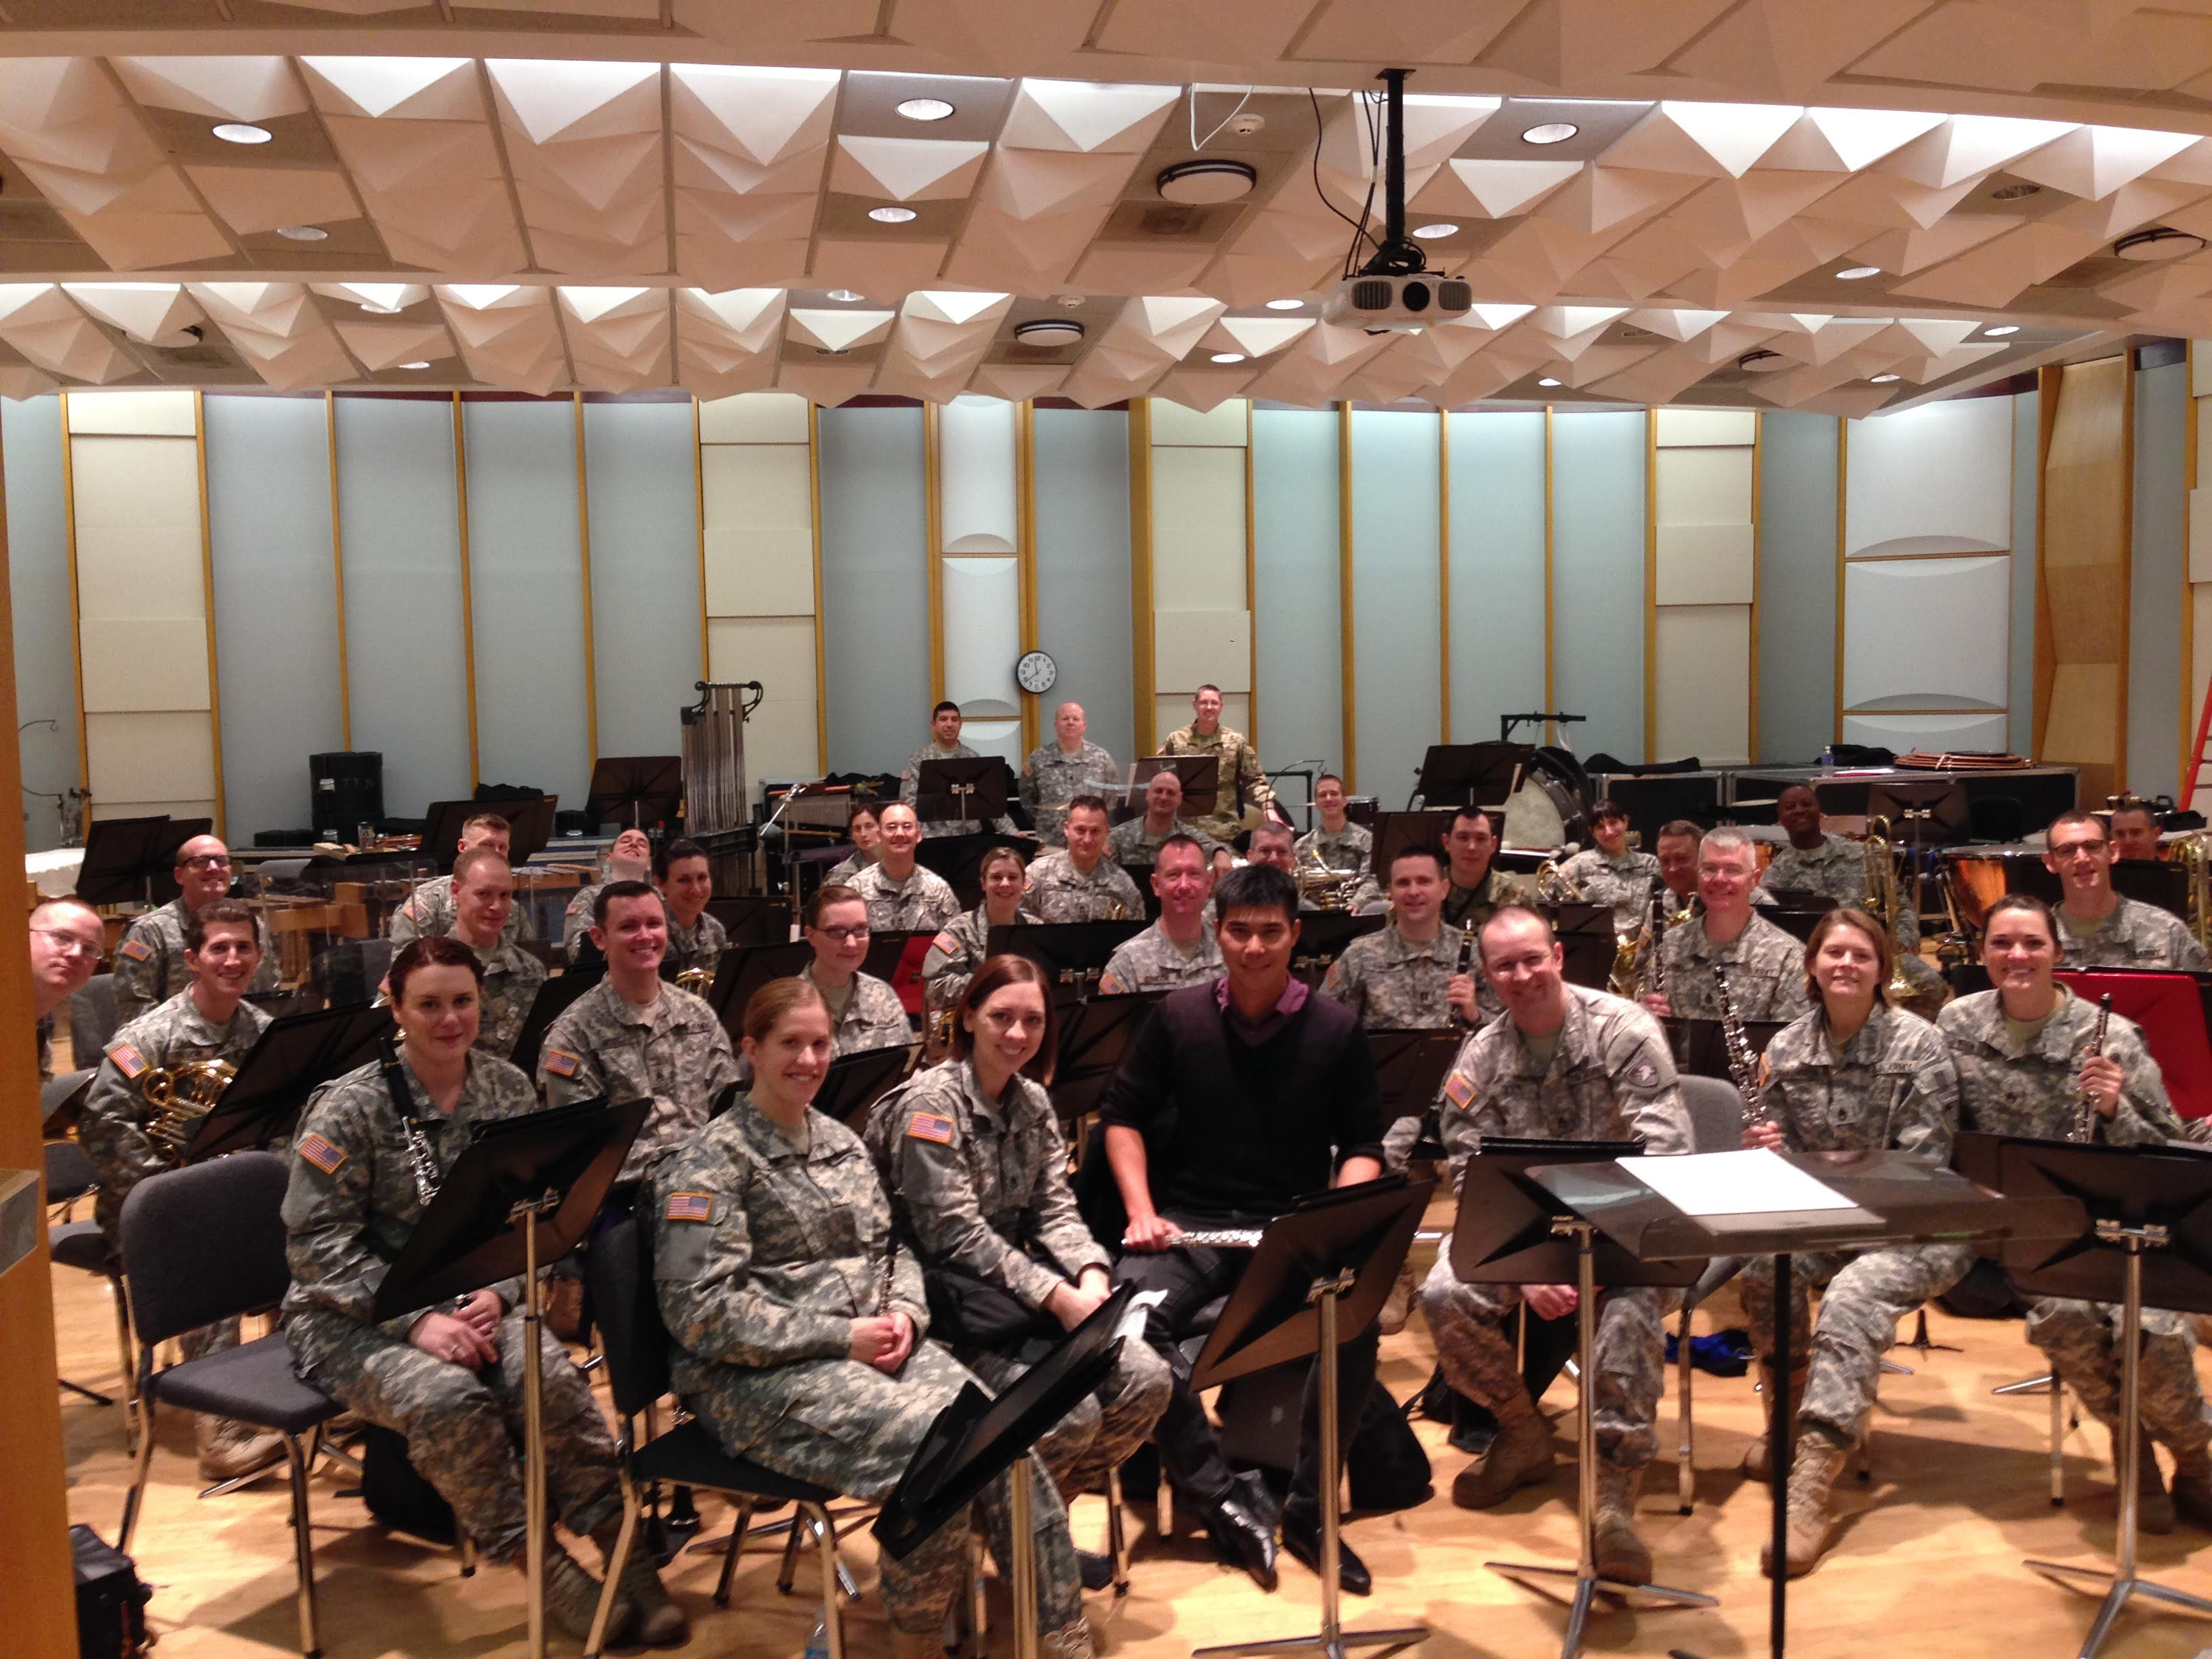 Invitational visit and rehearsal with the wonderful West Point Band in New York